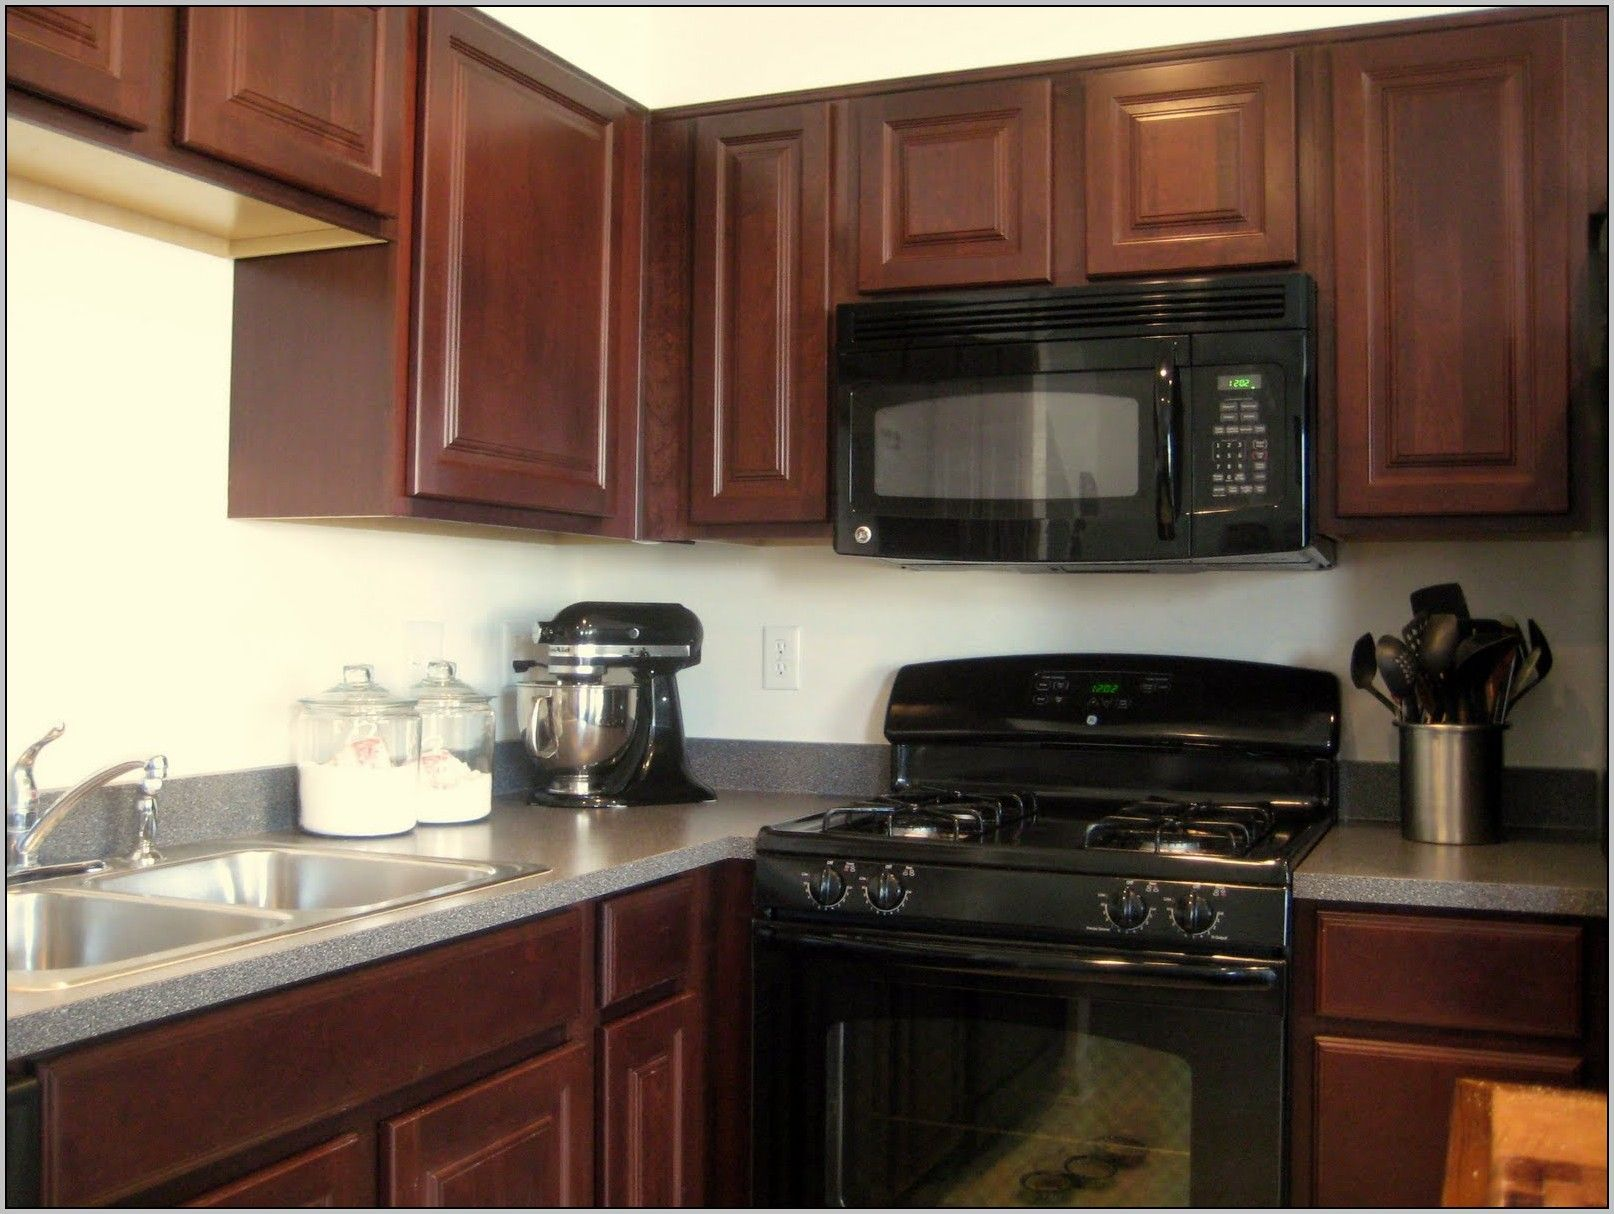 Here Are The Best Kitchen Paint Colors According To Top Designers Kitchen Cabinets With Black Appliances Dark Brown Kitchen Cabinets Brown Kitchen Cabinets